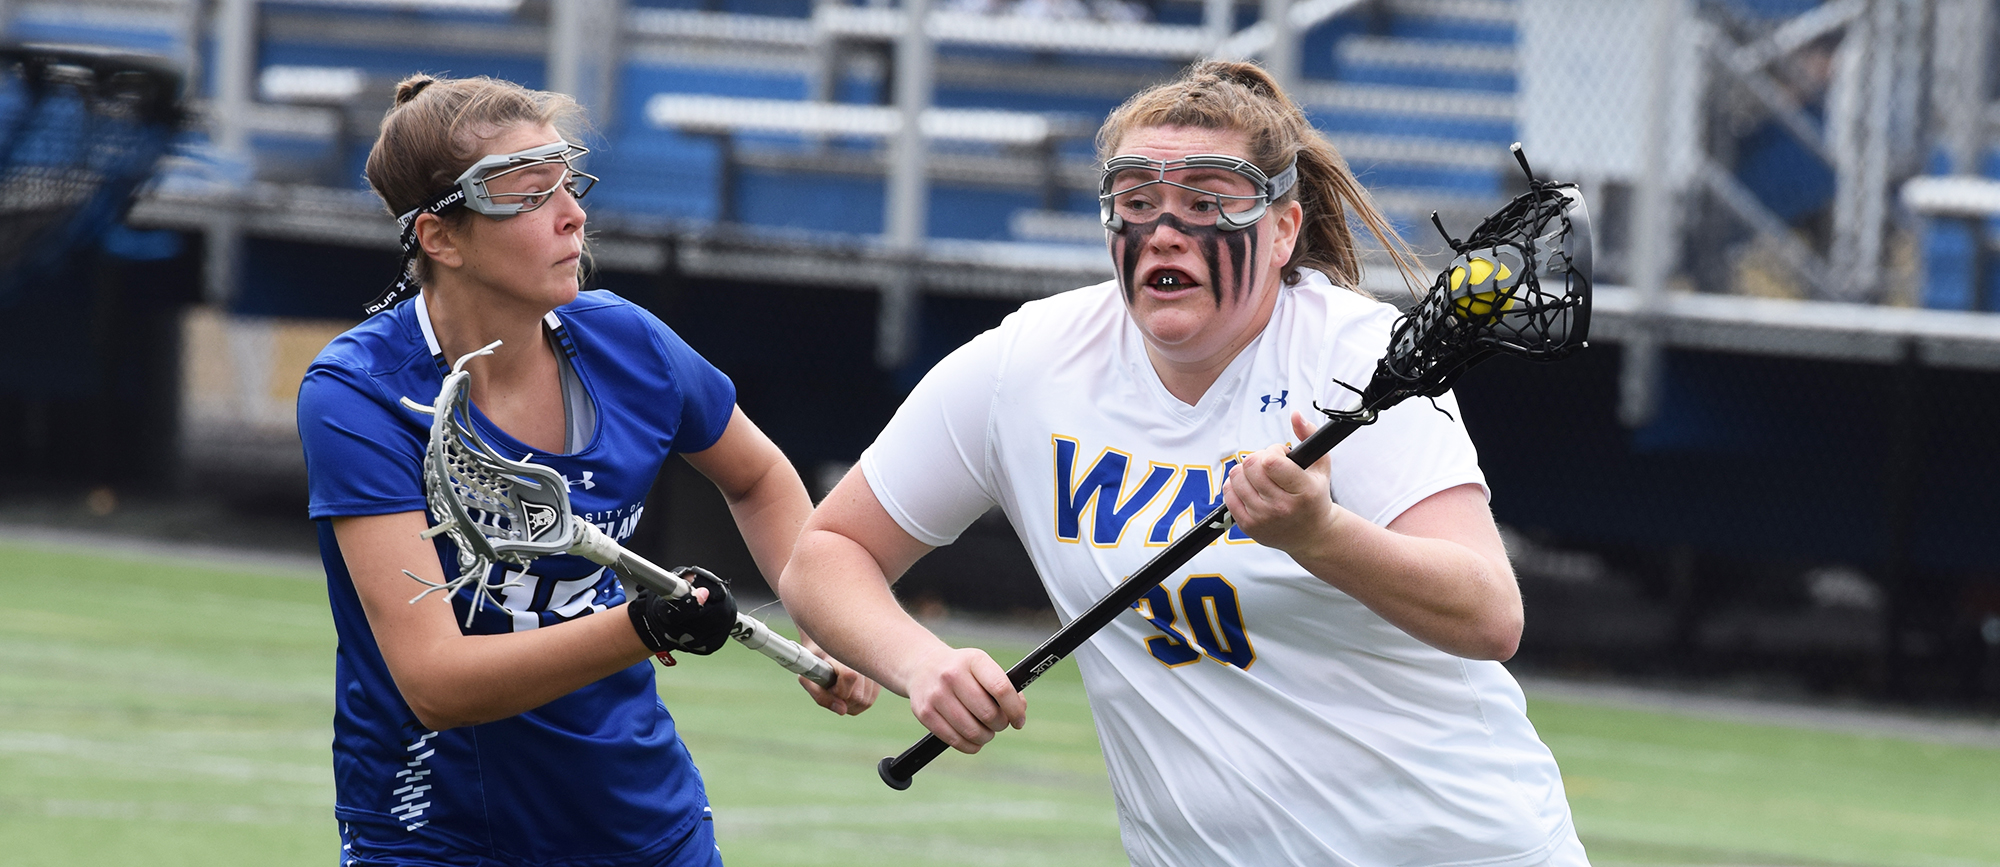 Eileen Ruby recorded two goals and one assist in Western New England's 18-15 loss to UNE on Saturday. (Photo by Rachael Margossian)